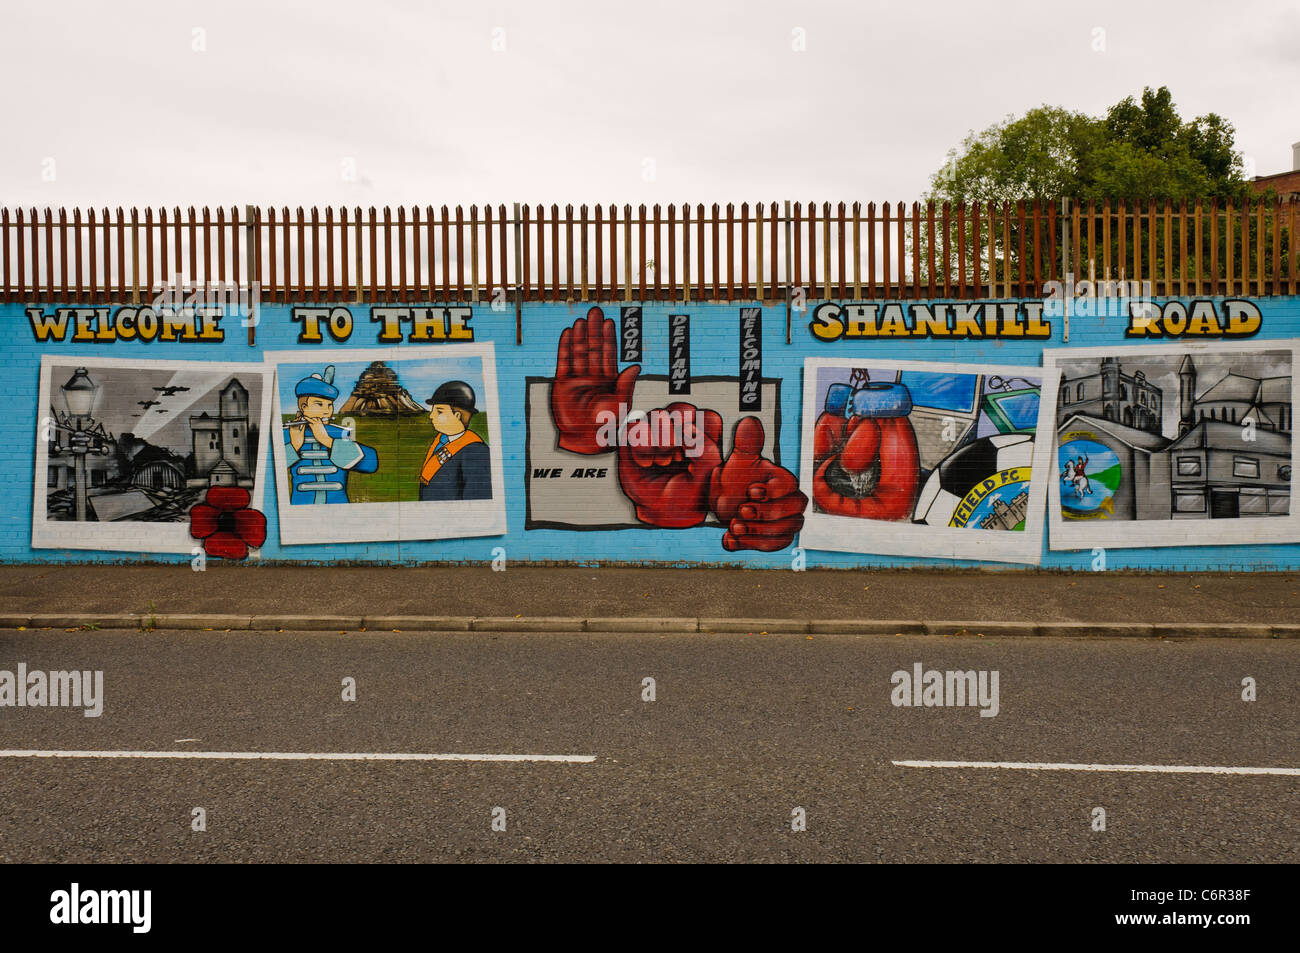 """Mural welcoming vistitors to the Shankill Road. """"We are Proud, Defiant, Welcoming"""" Stock Photo"""